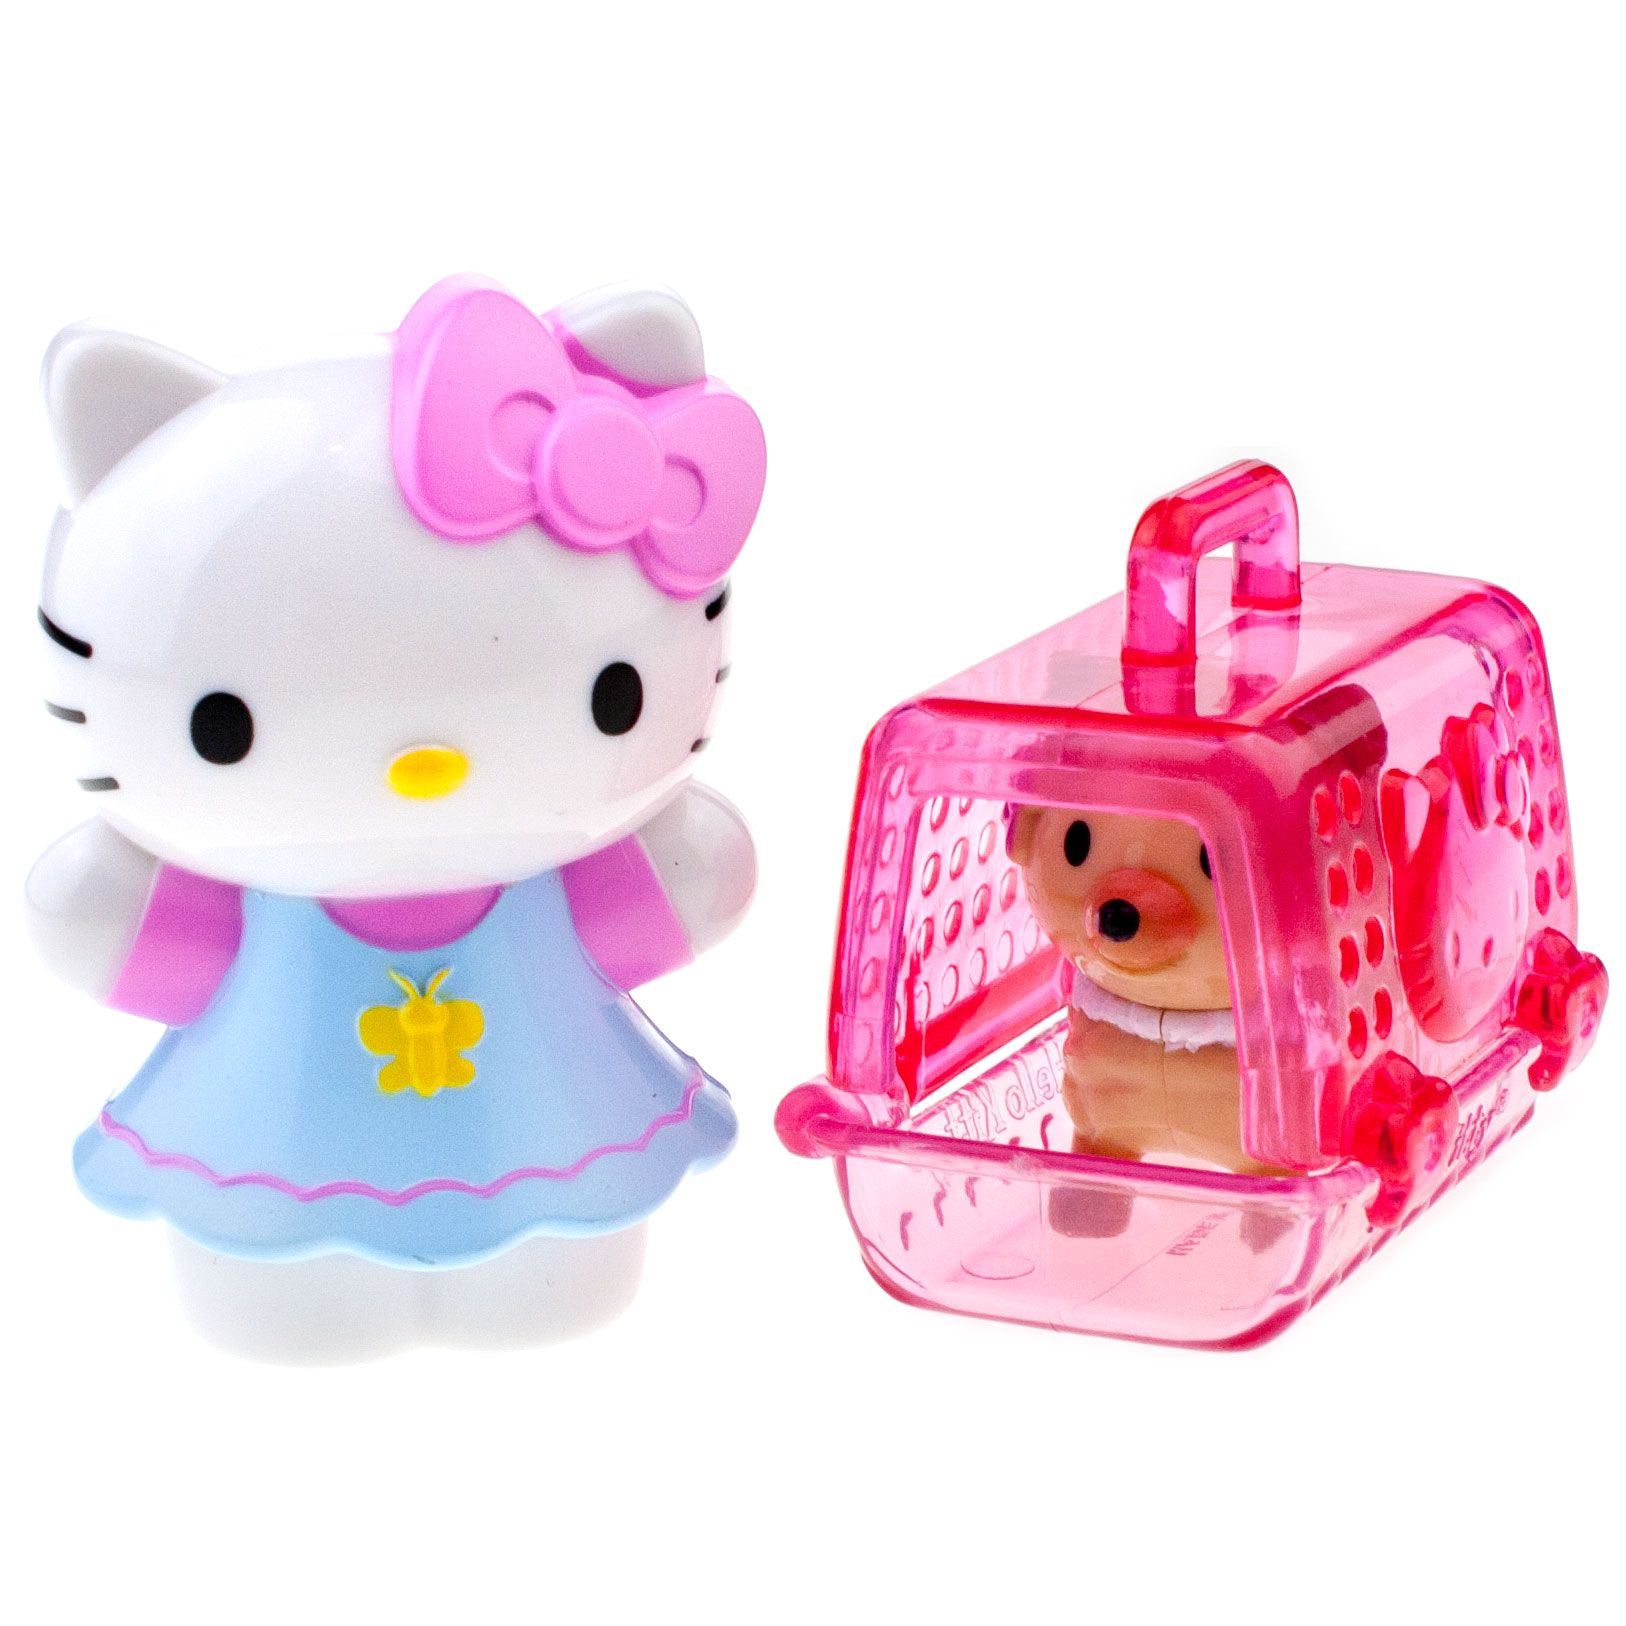 Hello Kitty Playful Pets Puppy For sale, available at